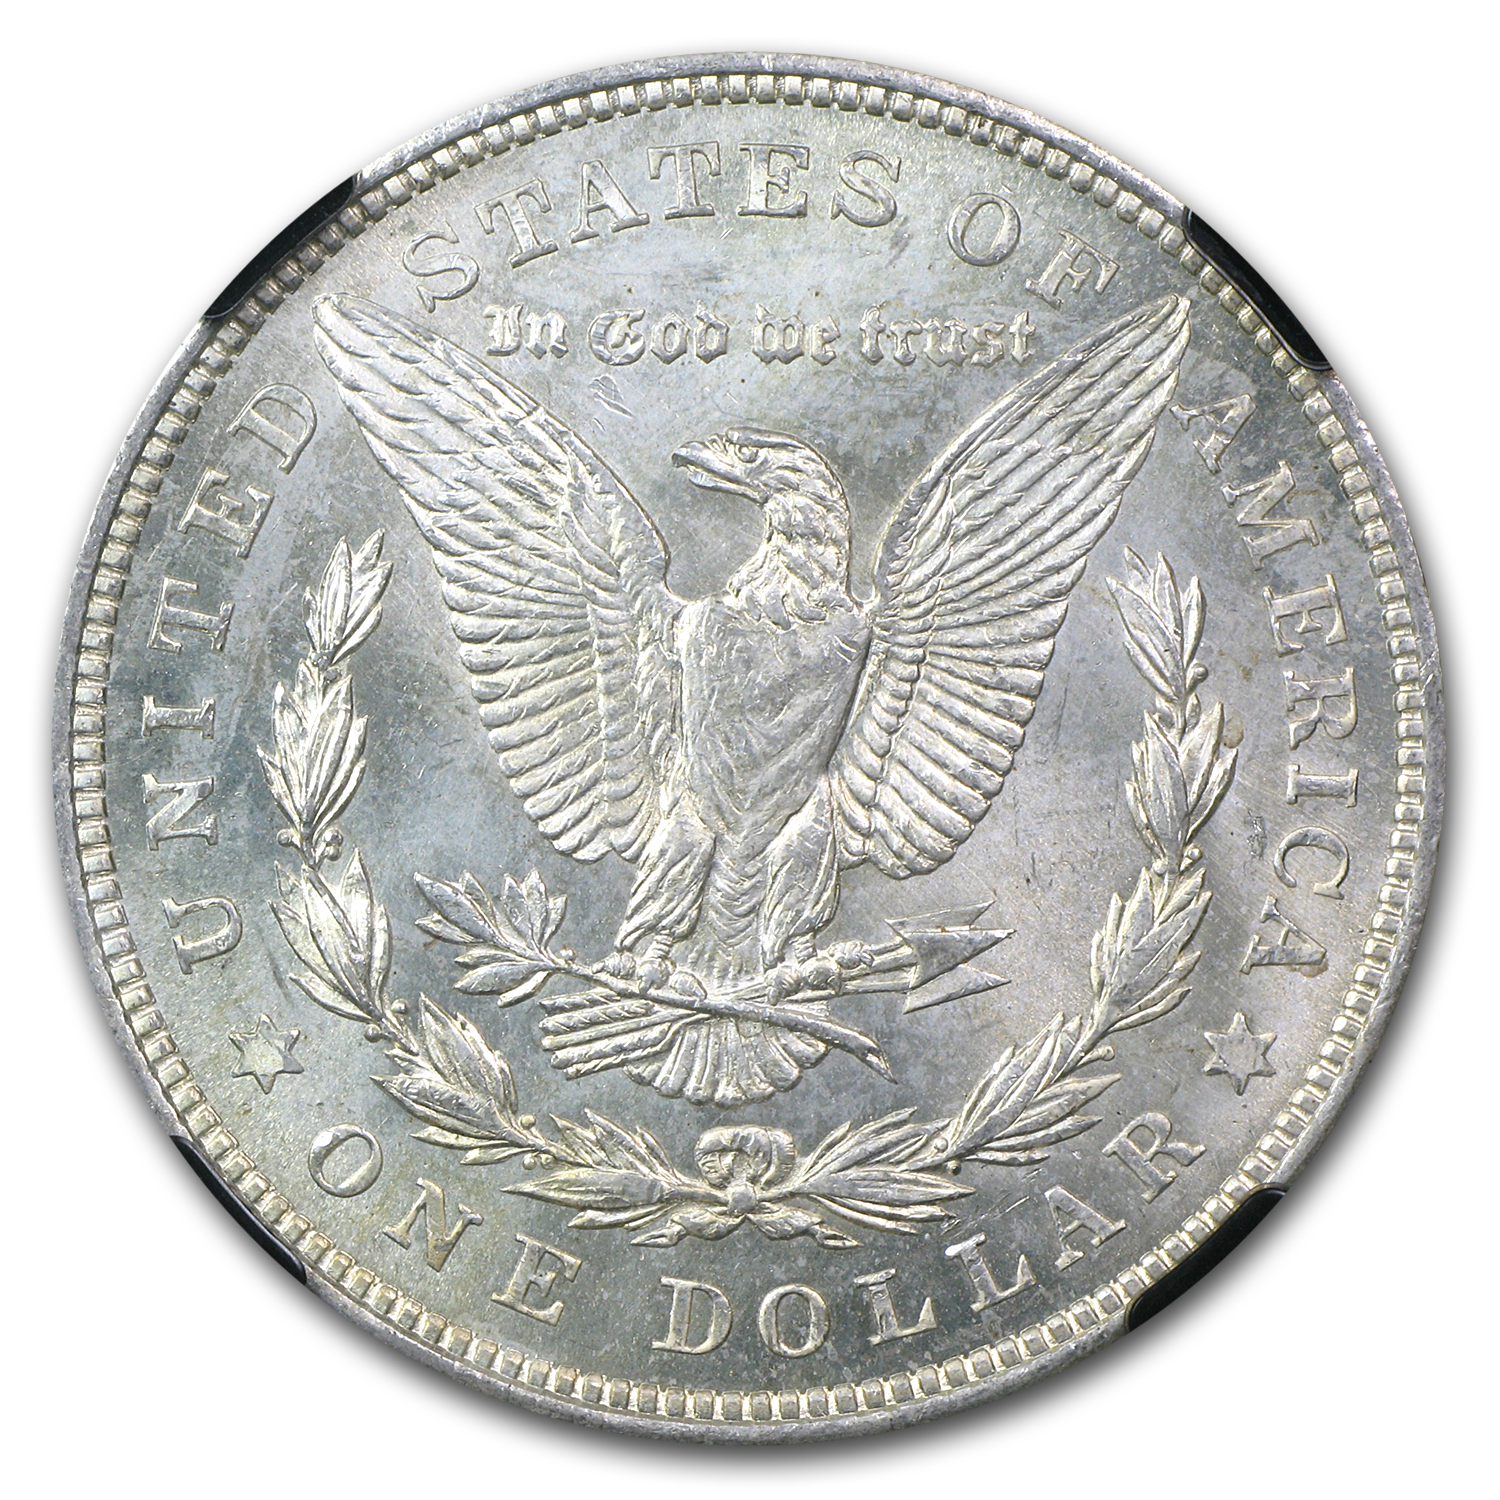 1921 Morgan Dollar - MS-64 NGC (25th Anniversary Holder)